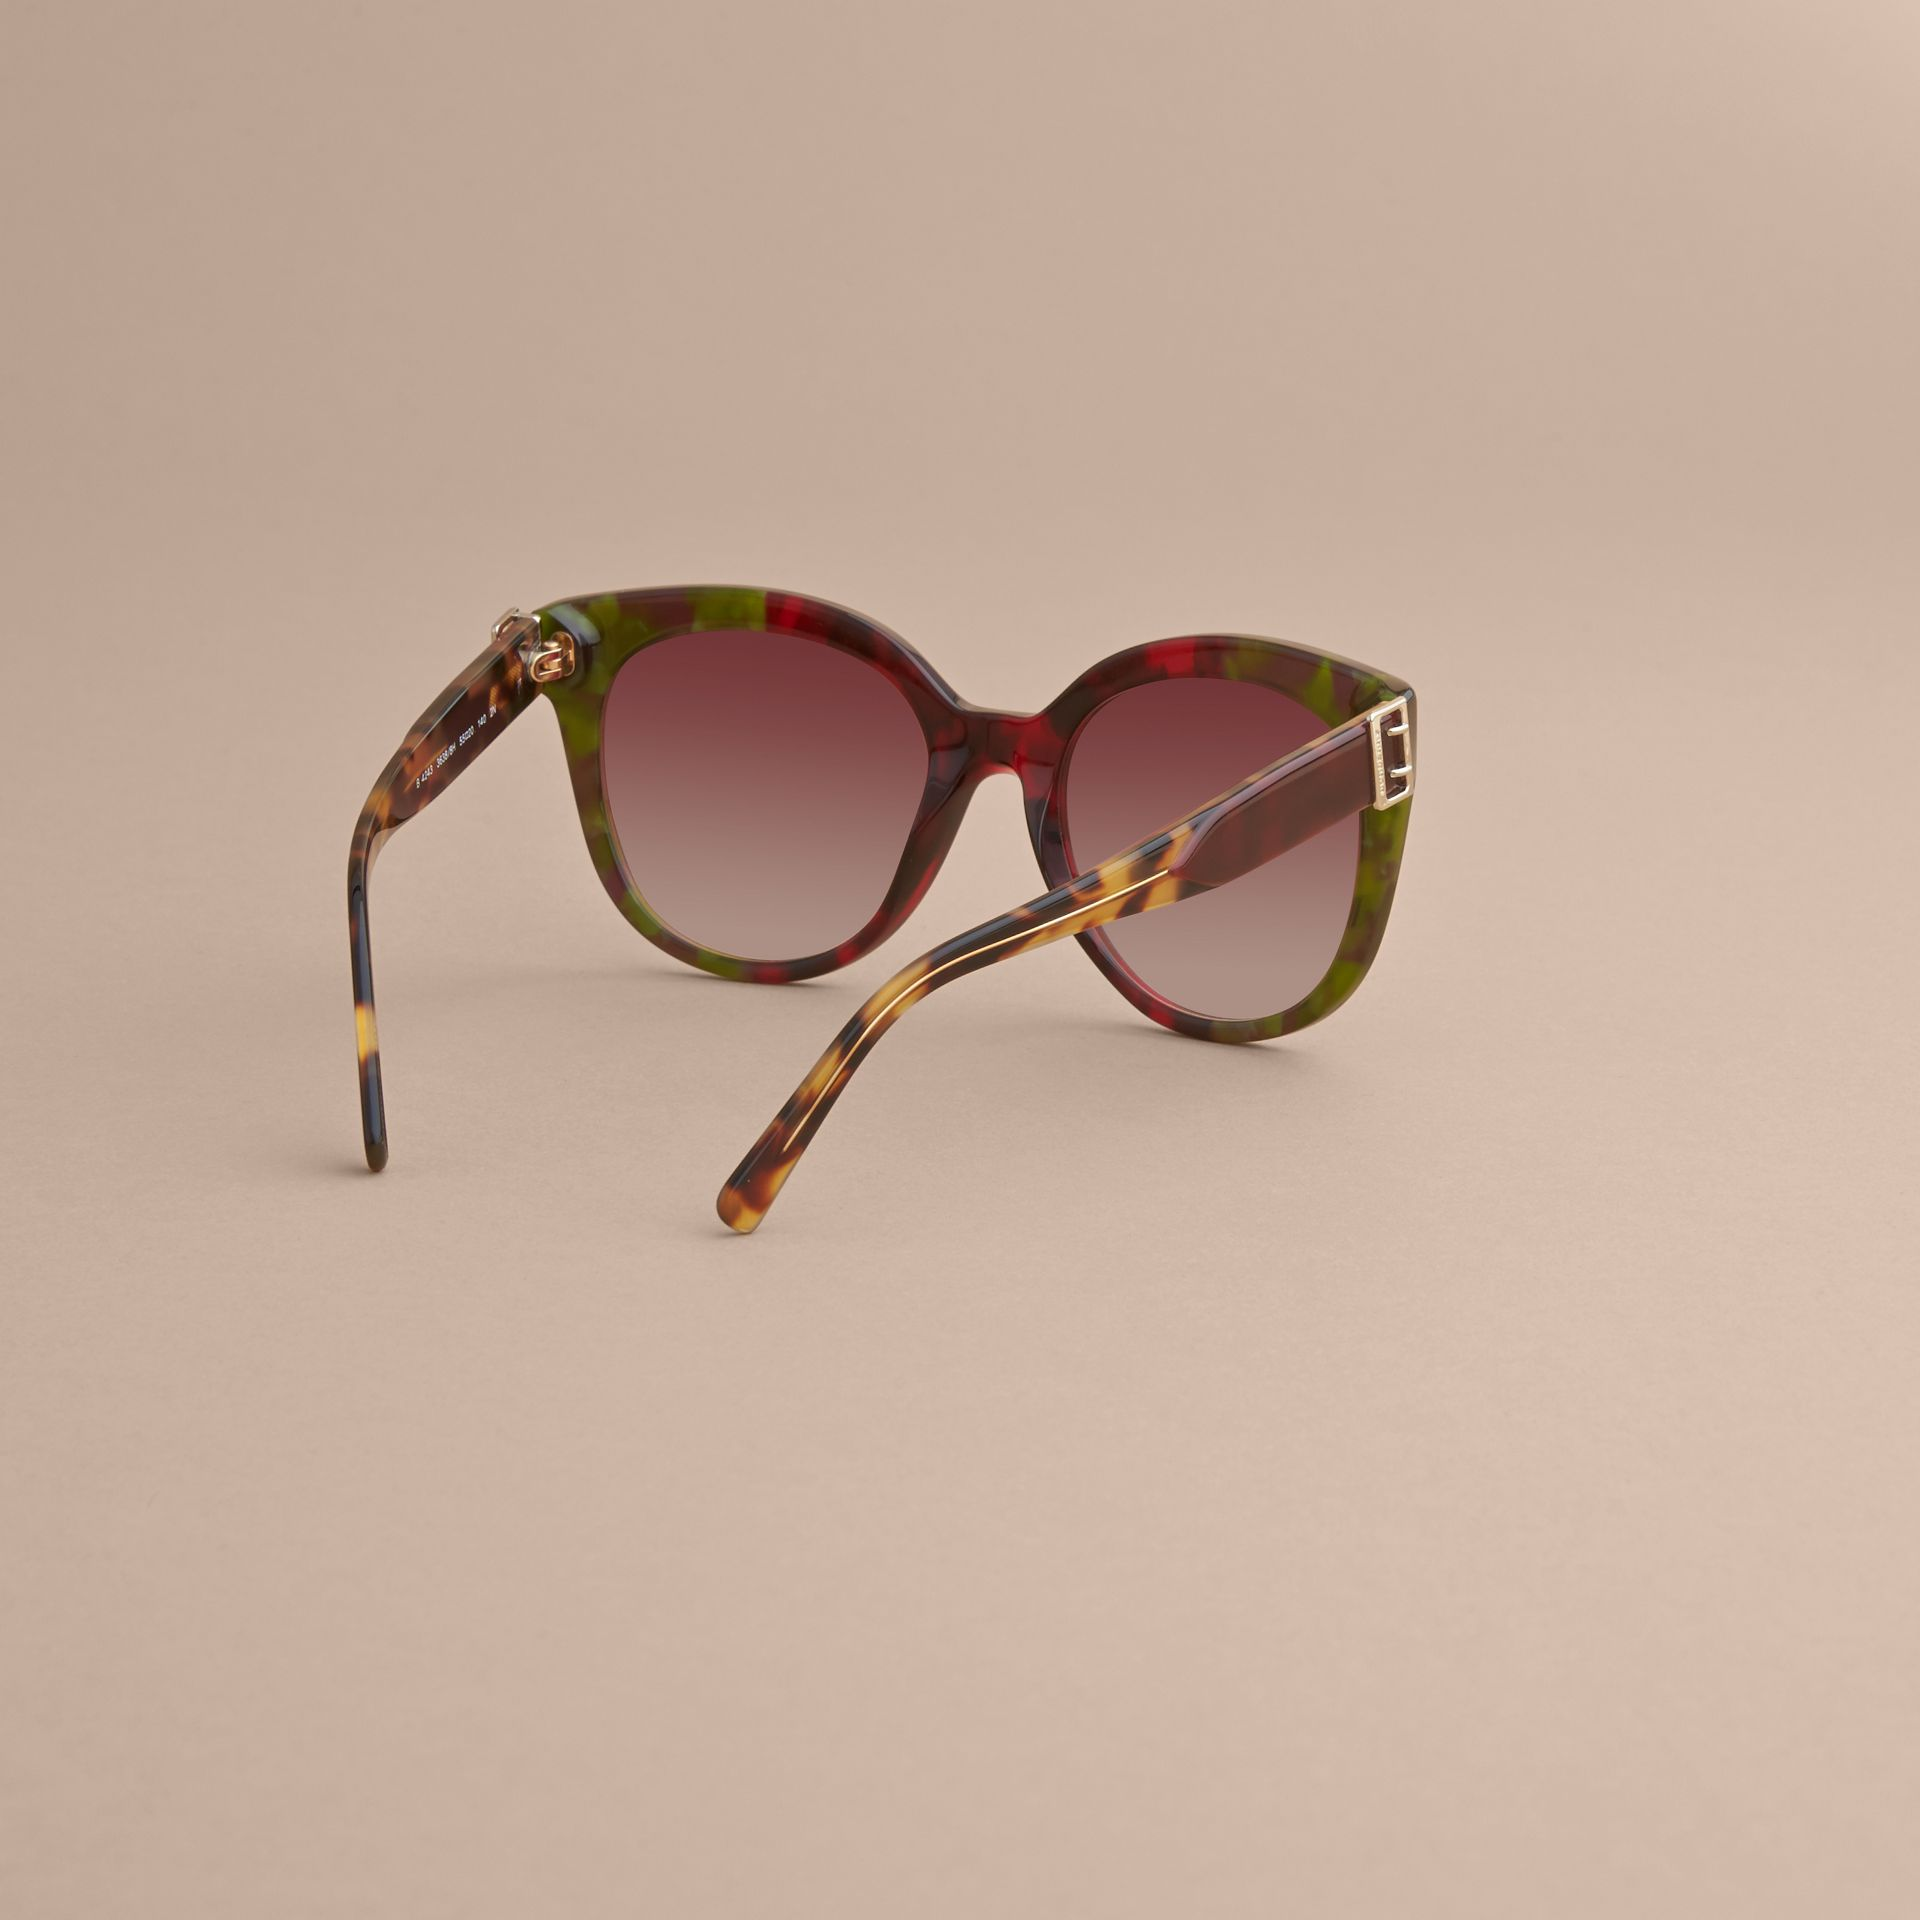 Buckle Detail Cat-eye Frame Sunglasses in Cardinal Red - Women | Burberry Hong Kong - gallery image 3